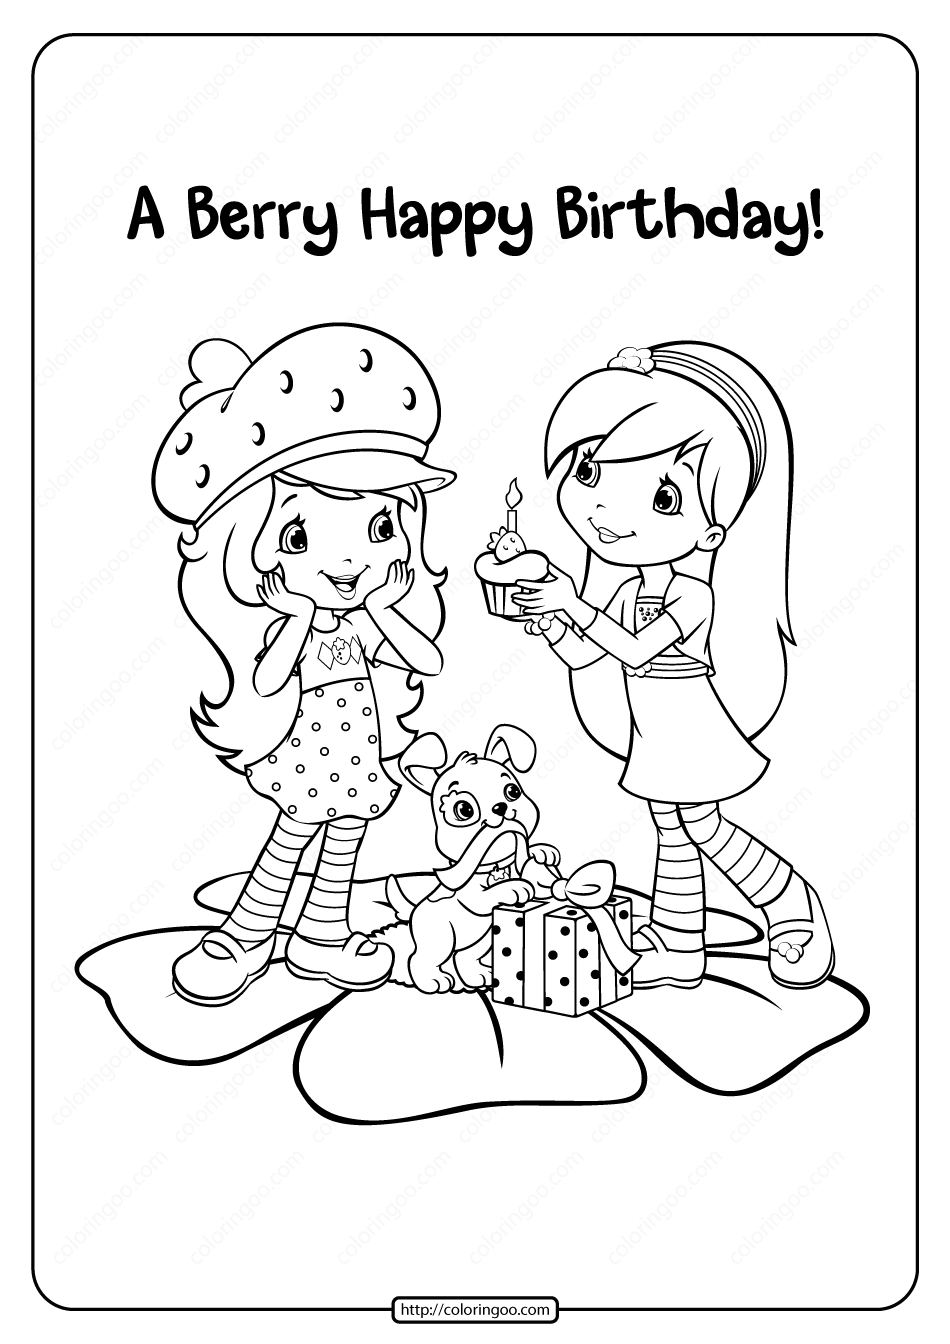 Printable A Berry Happy Birthday Coloring Page in 2020